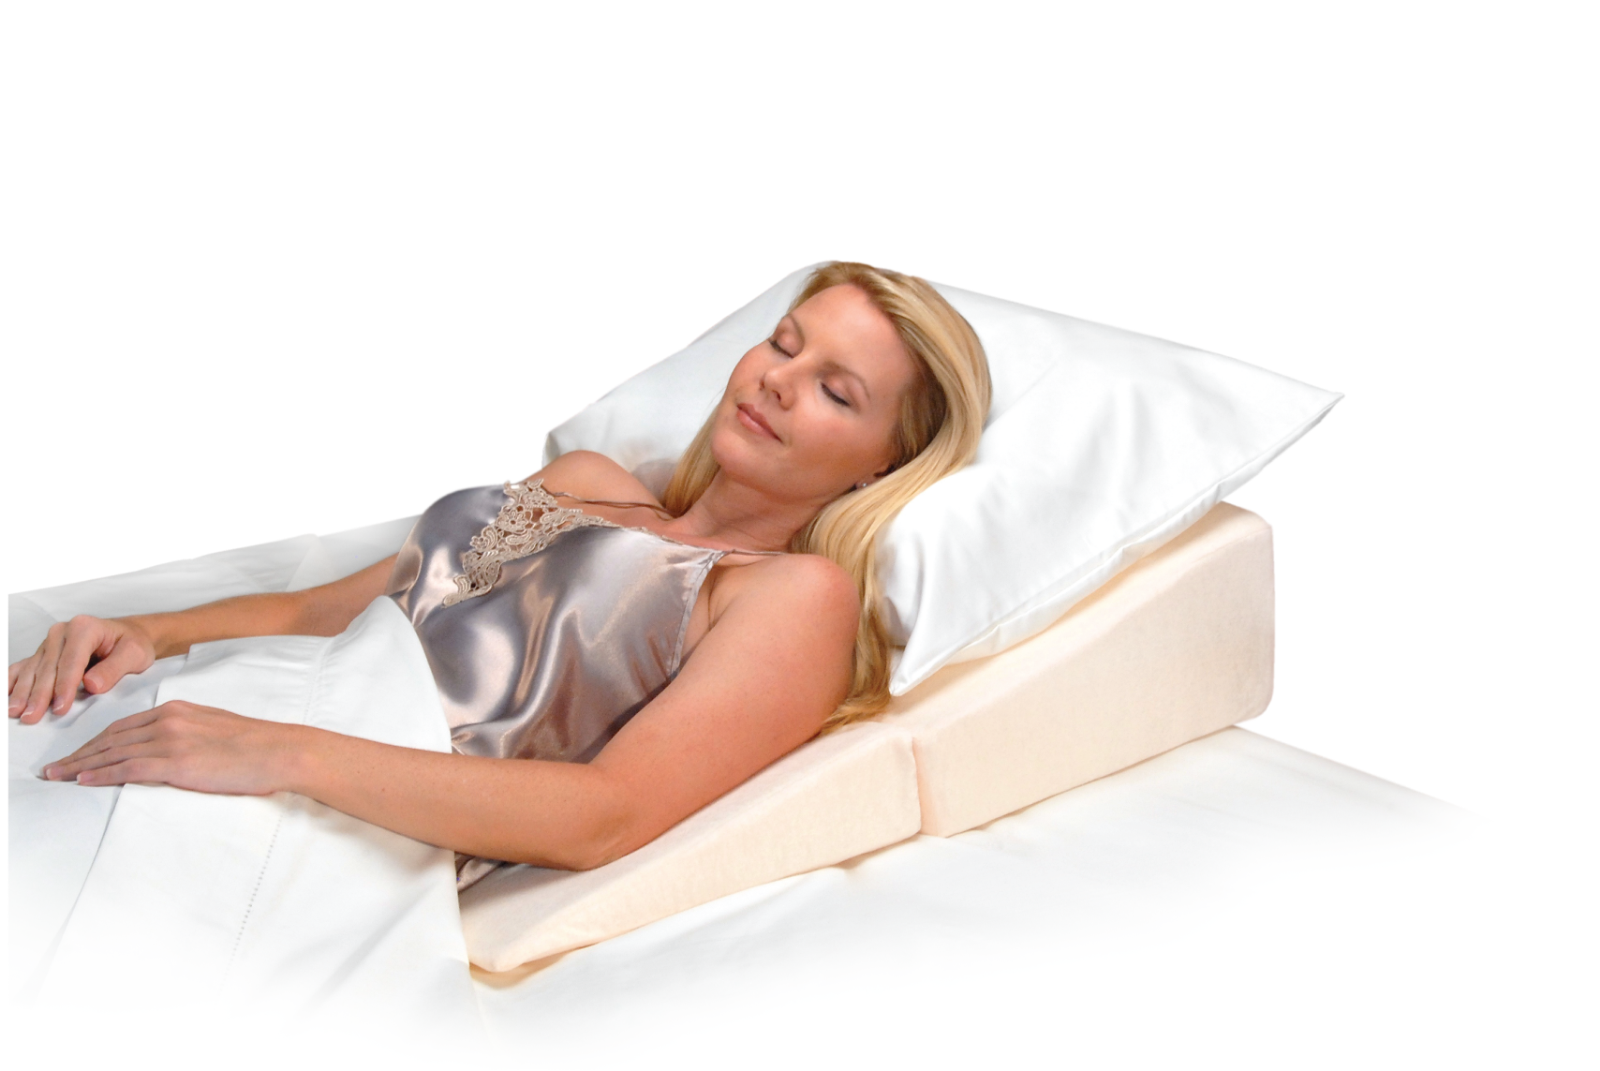 pillow system pain hammacher product wedge the bed schlemmer relieving